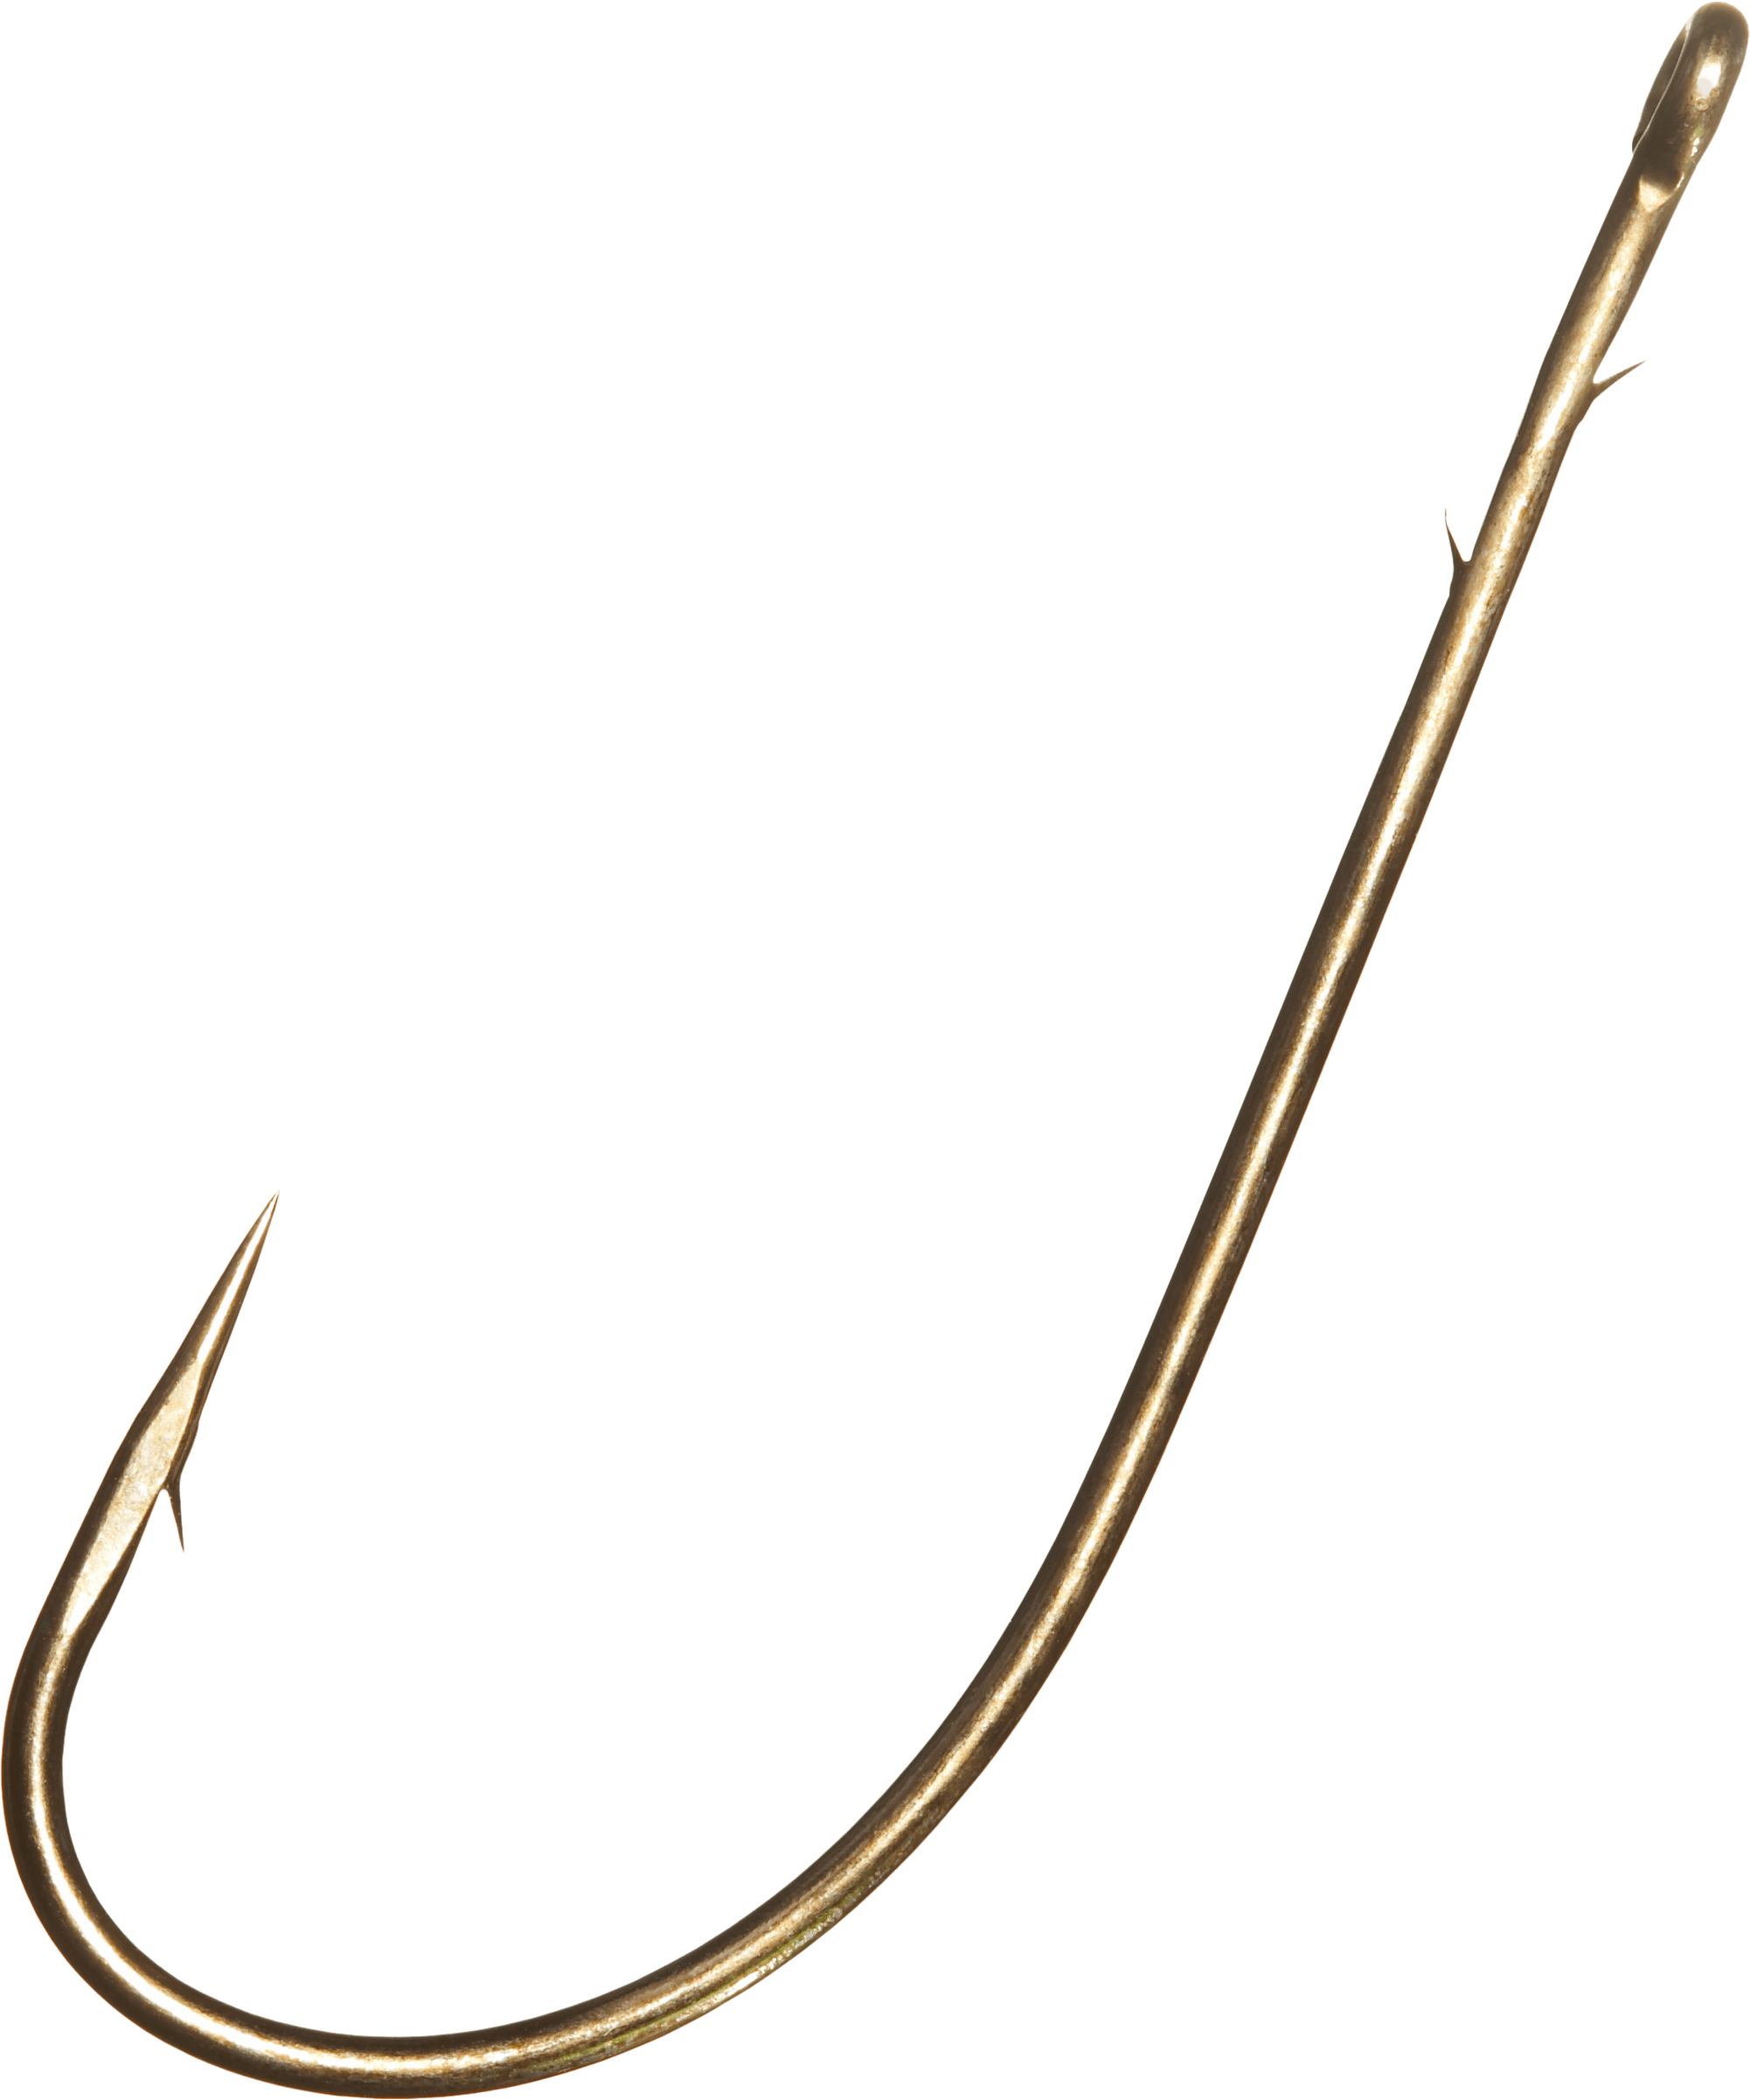 Fishing line and hook png. Large fish transparent stickpng